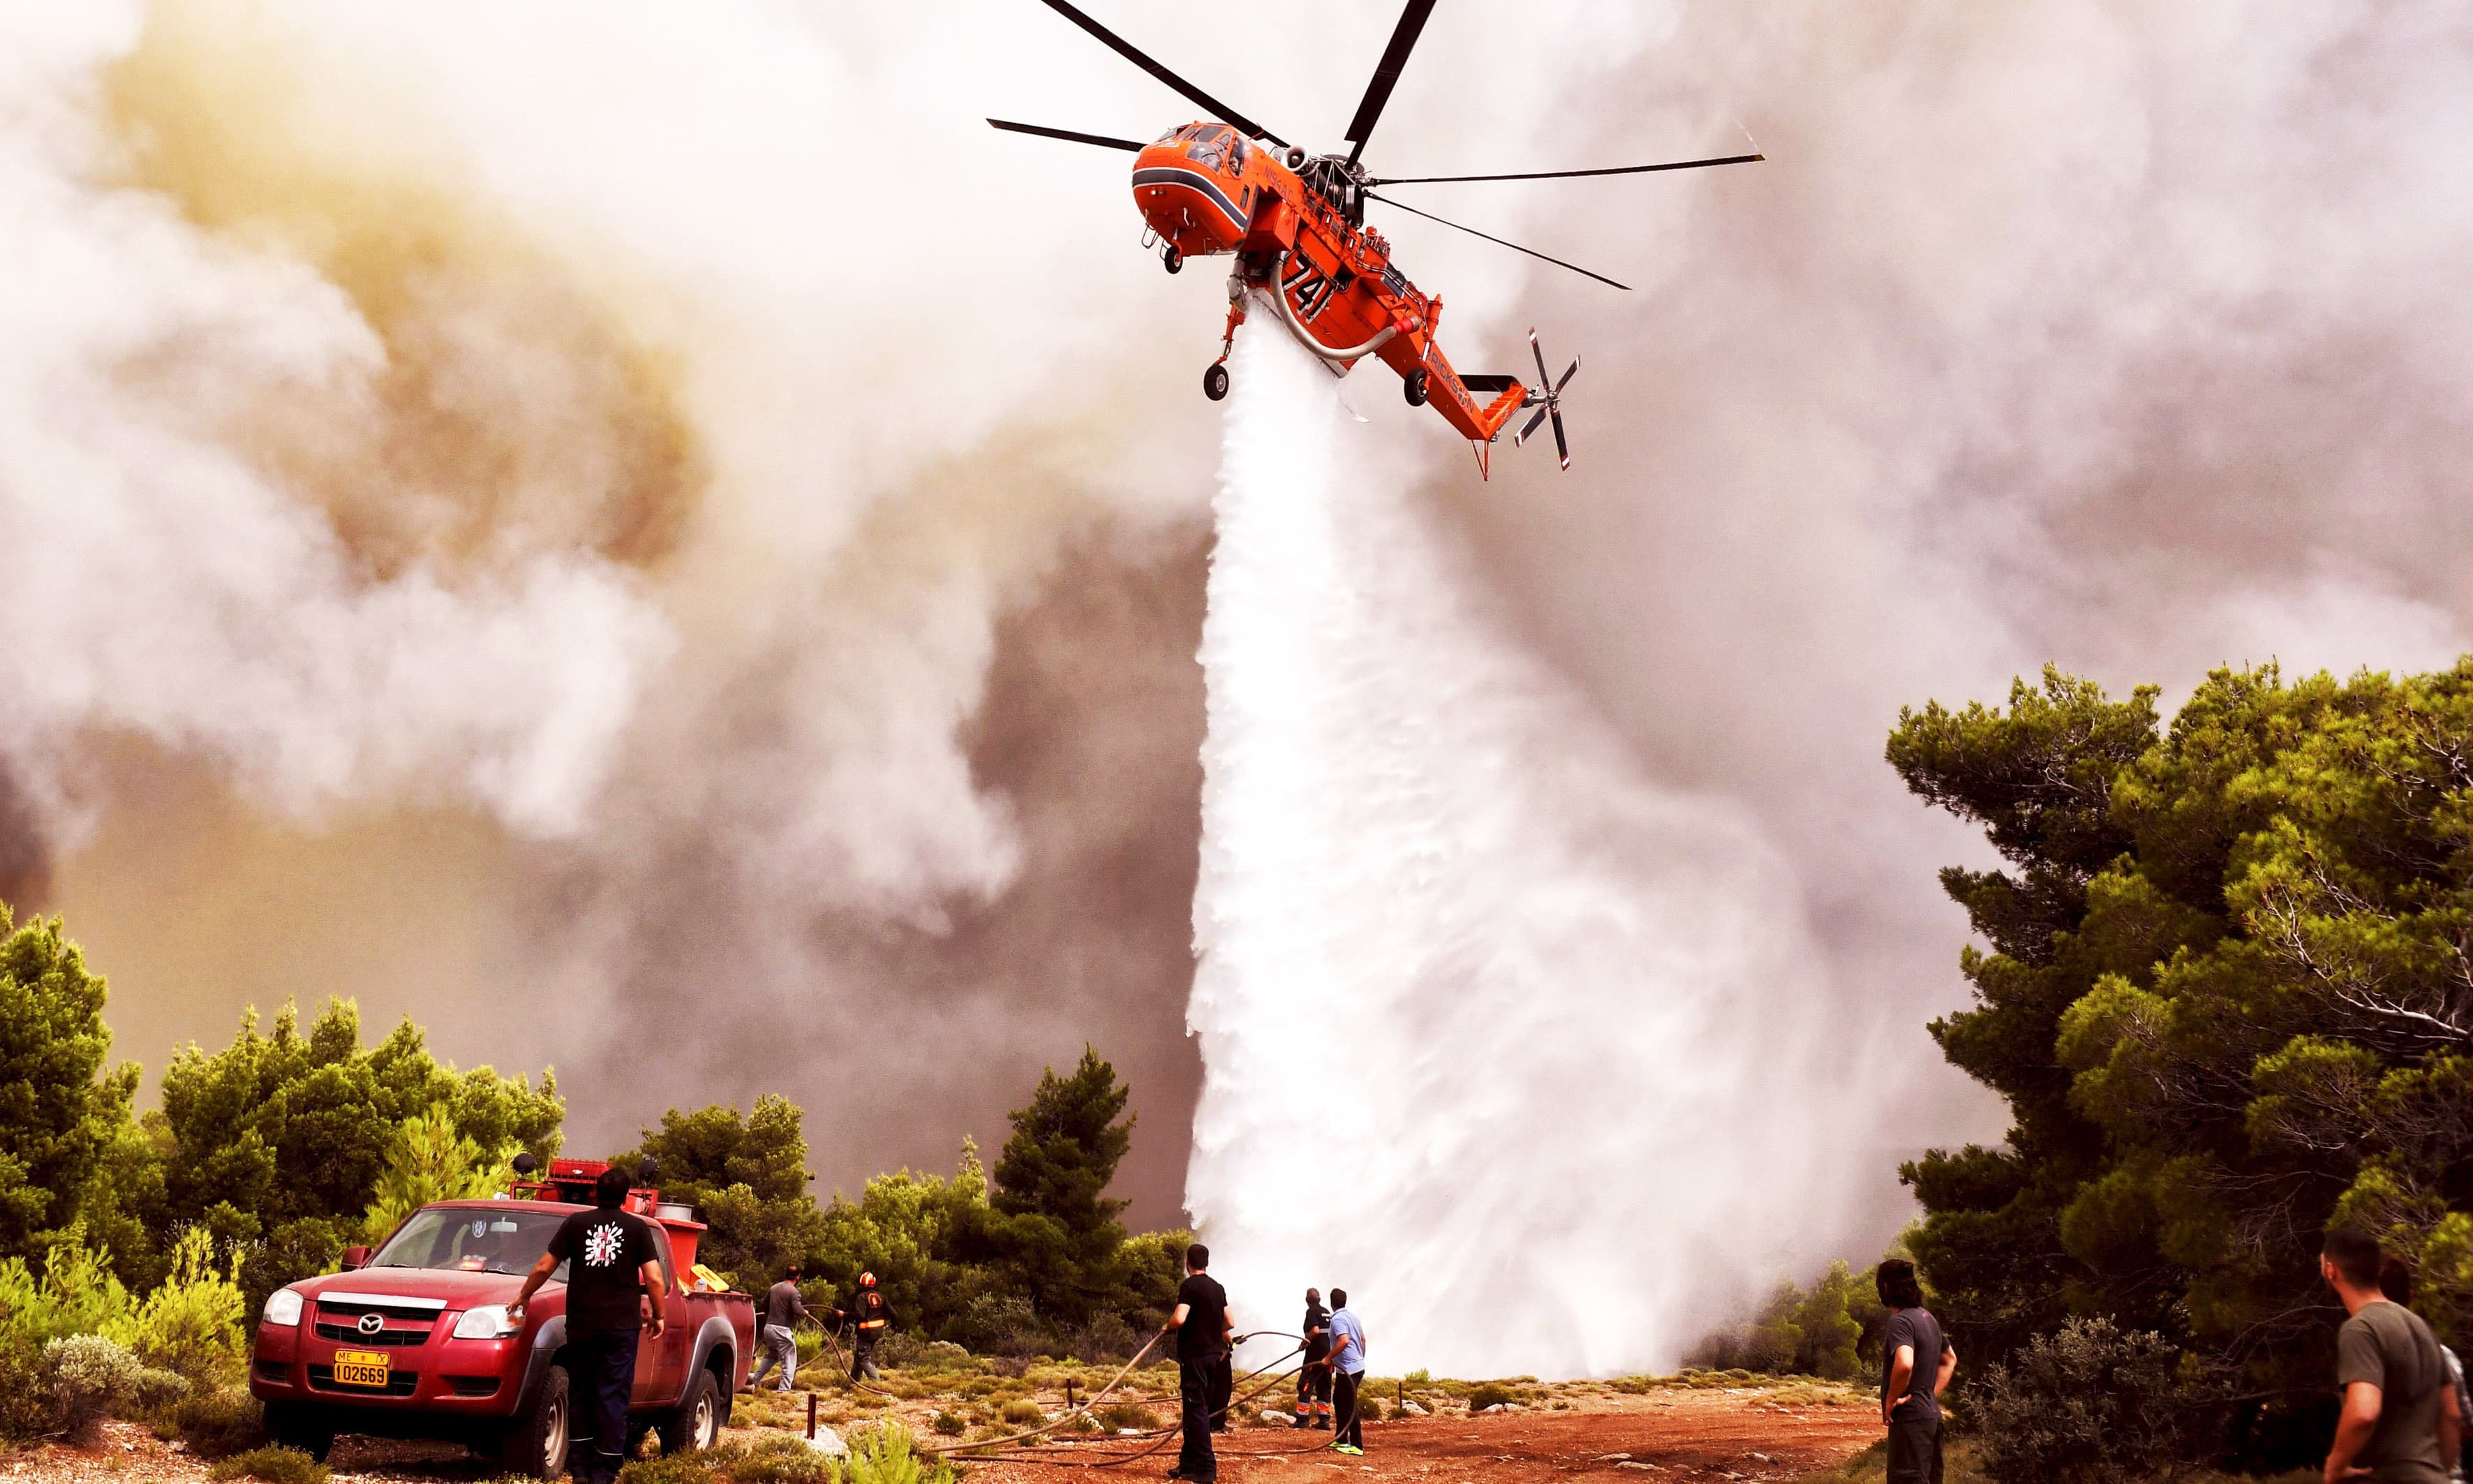 A helicopter drops water to extinguish flames. —AFP